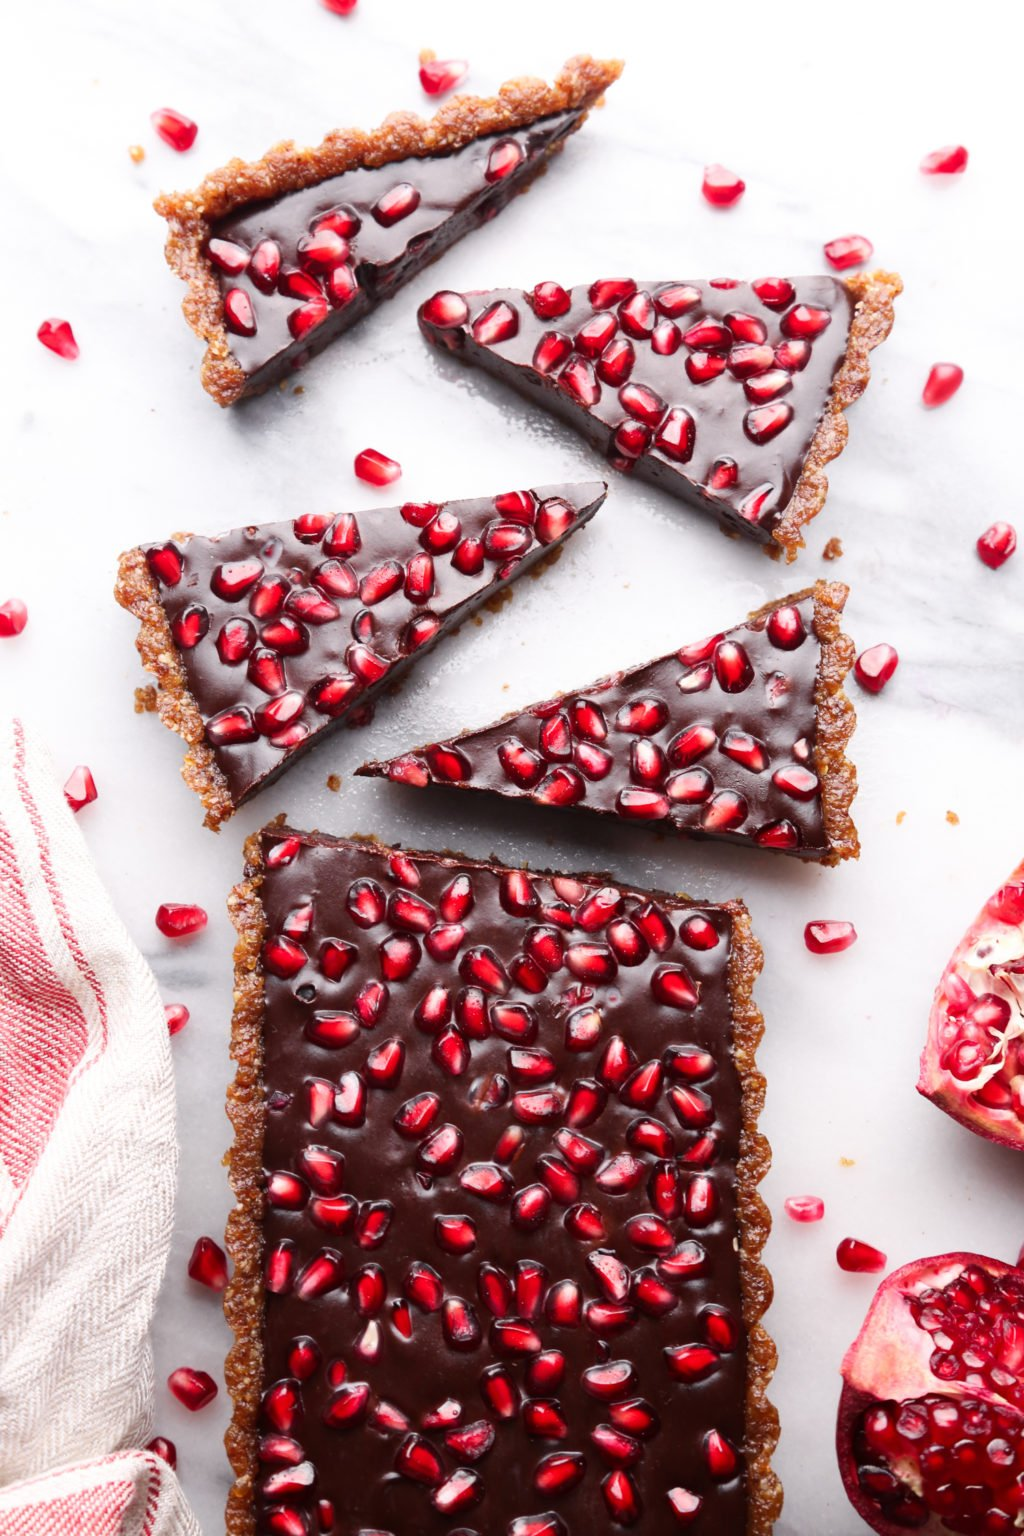 No-Bake Chocolate Pomegranate Tart | Wife Mama Foodie | Free of Dairy, Gluten, Grains, Eggs, & Refined Sugar.